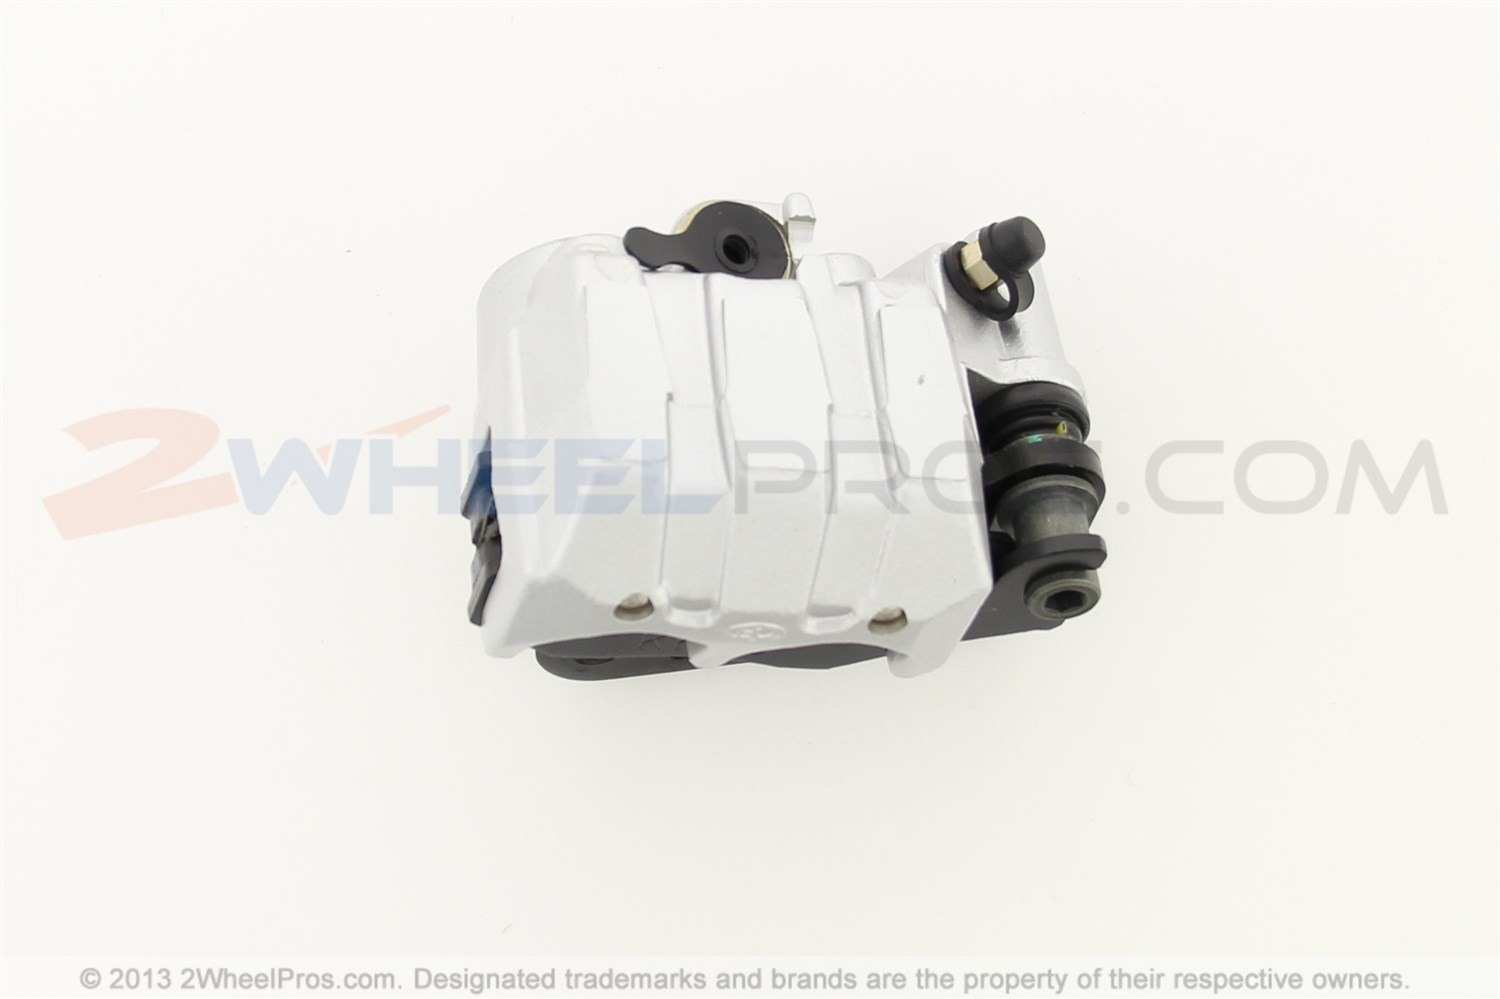 Oem Parts Kymco Pictures. KYMCO MONGOOSE 50 SPORT LD10BA ATV PARTS MANUAL  CATALOG DOWNLOAD